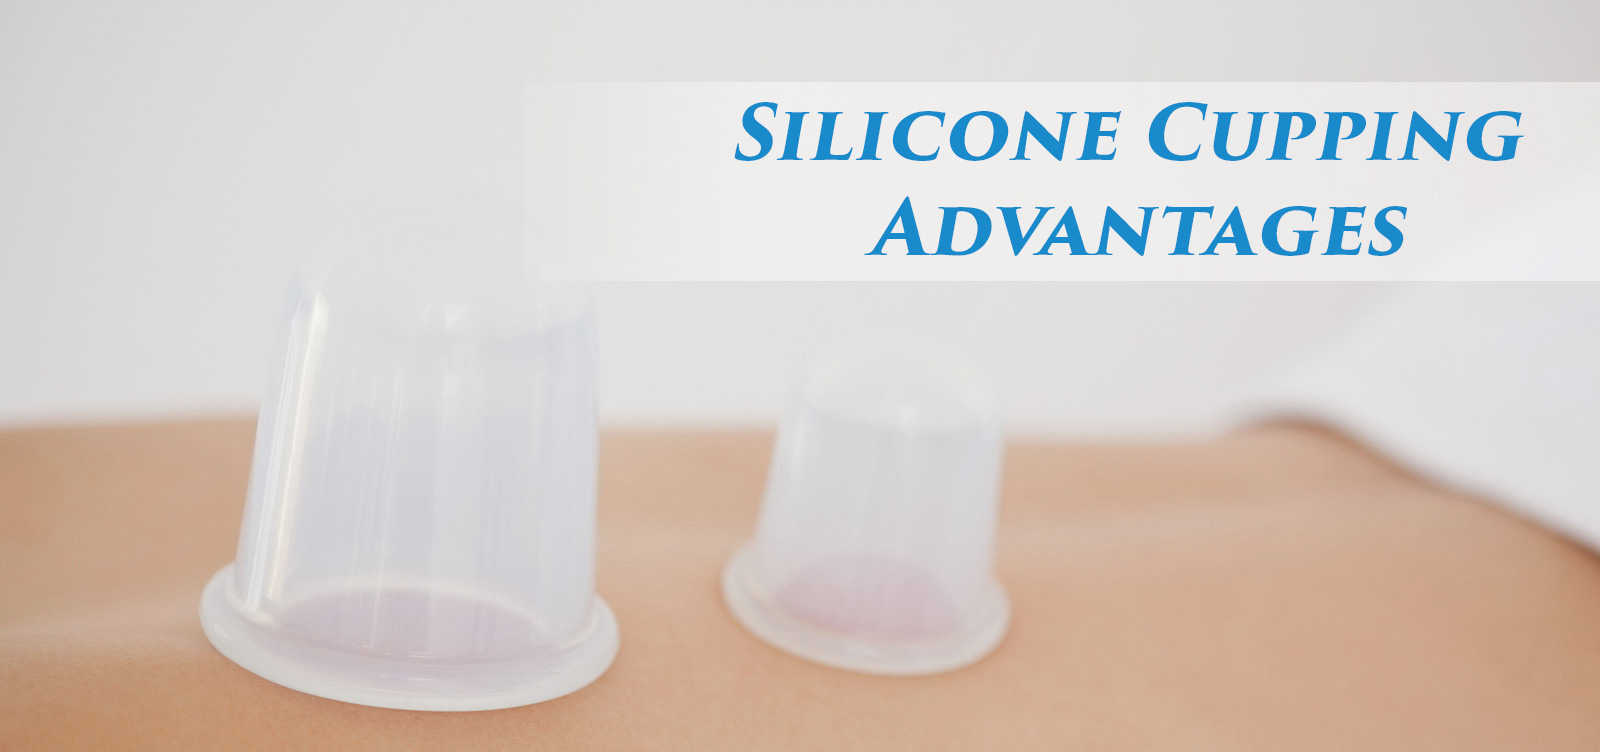 lierre-ca-silicone-cupping-advantage-massage-cupping-theraphy-blog